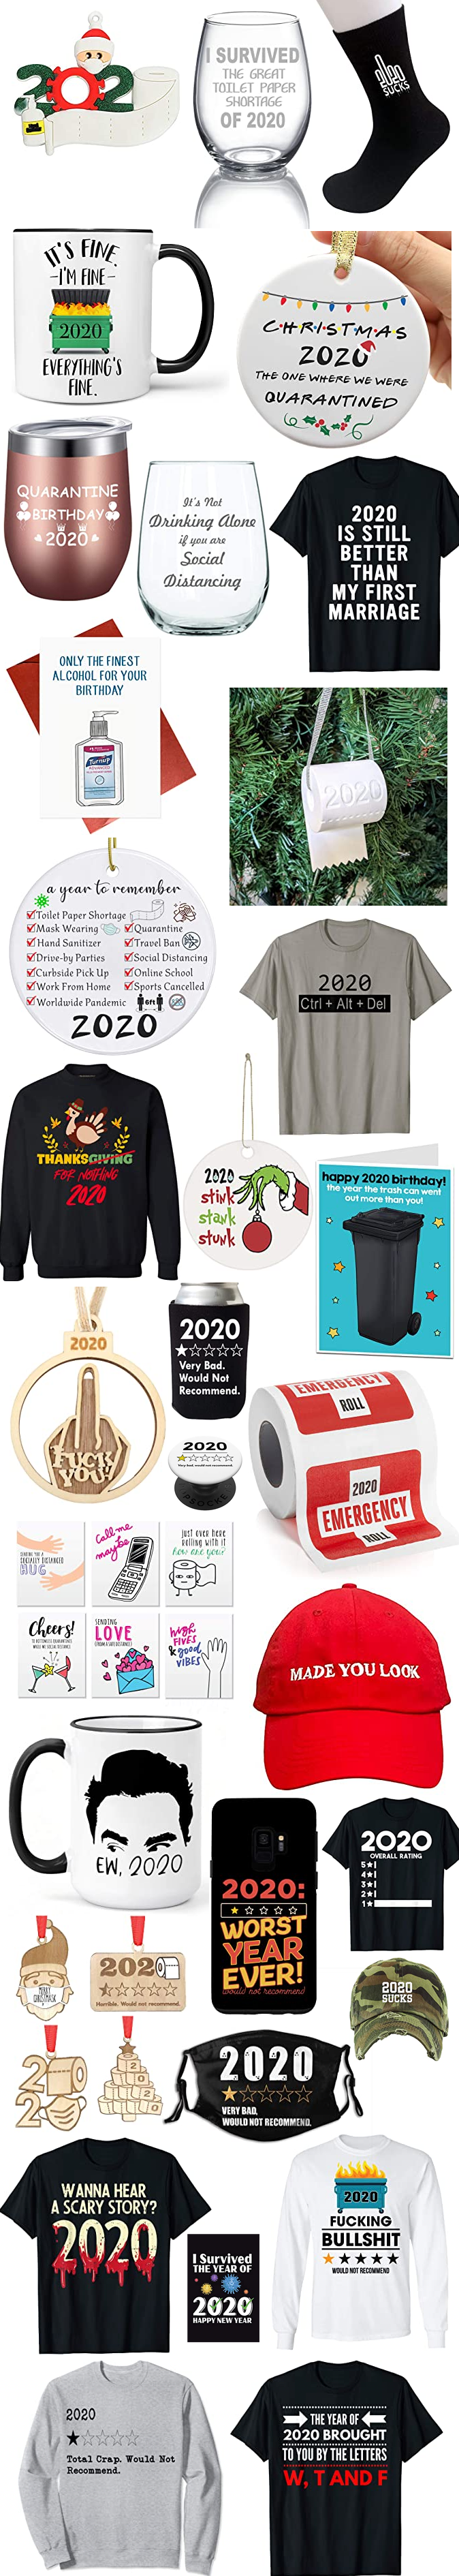 2020-Would-Not-Recommend-Gifts